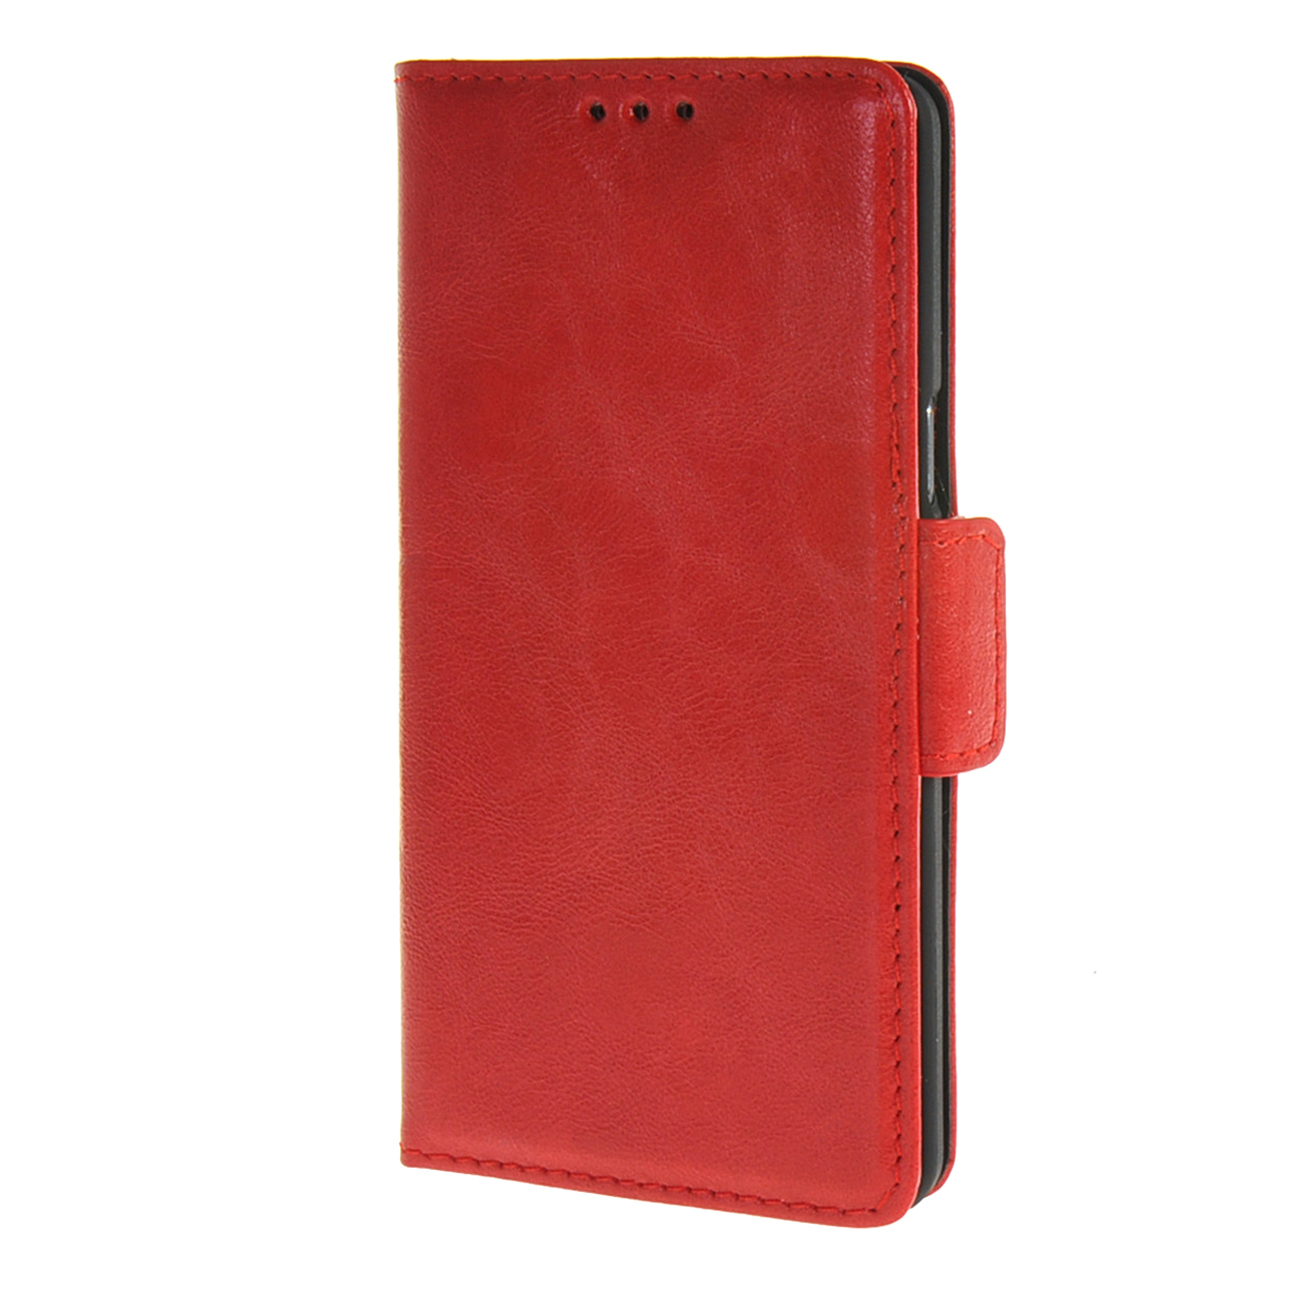 MOONCASE mooncase slim leather side flip wallet card slot pouch with kickstand shell back чехол для lg l bello d331 d335 red